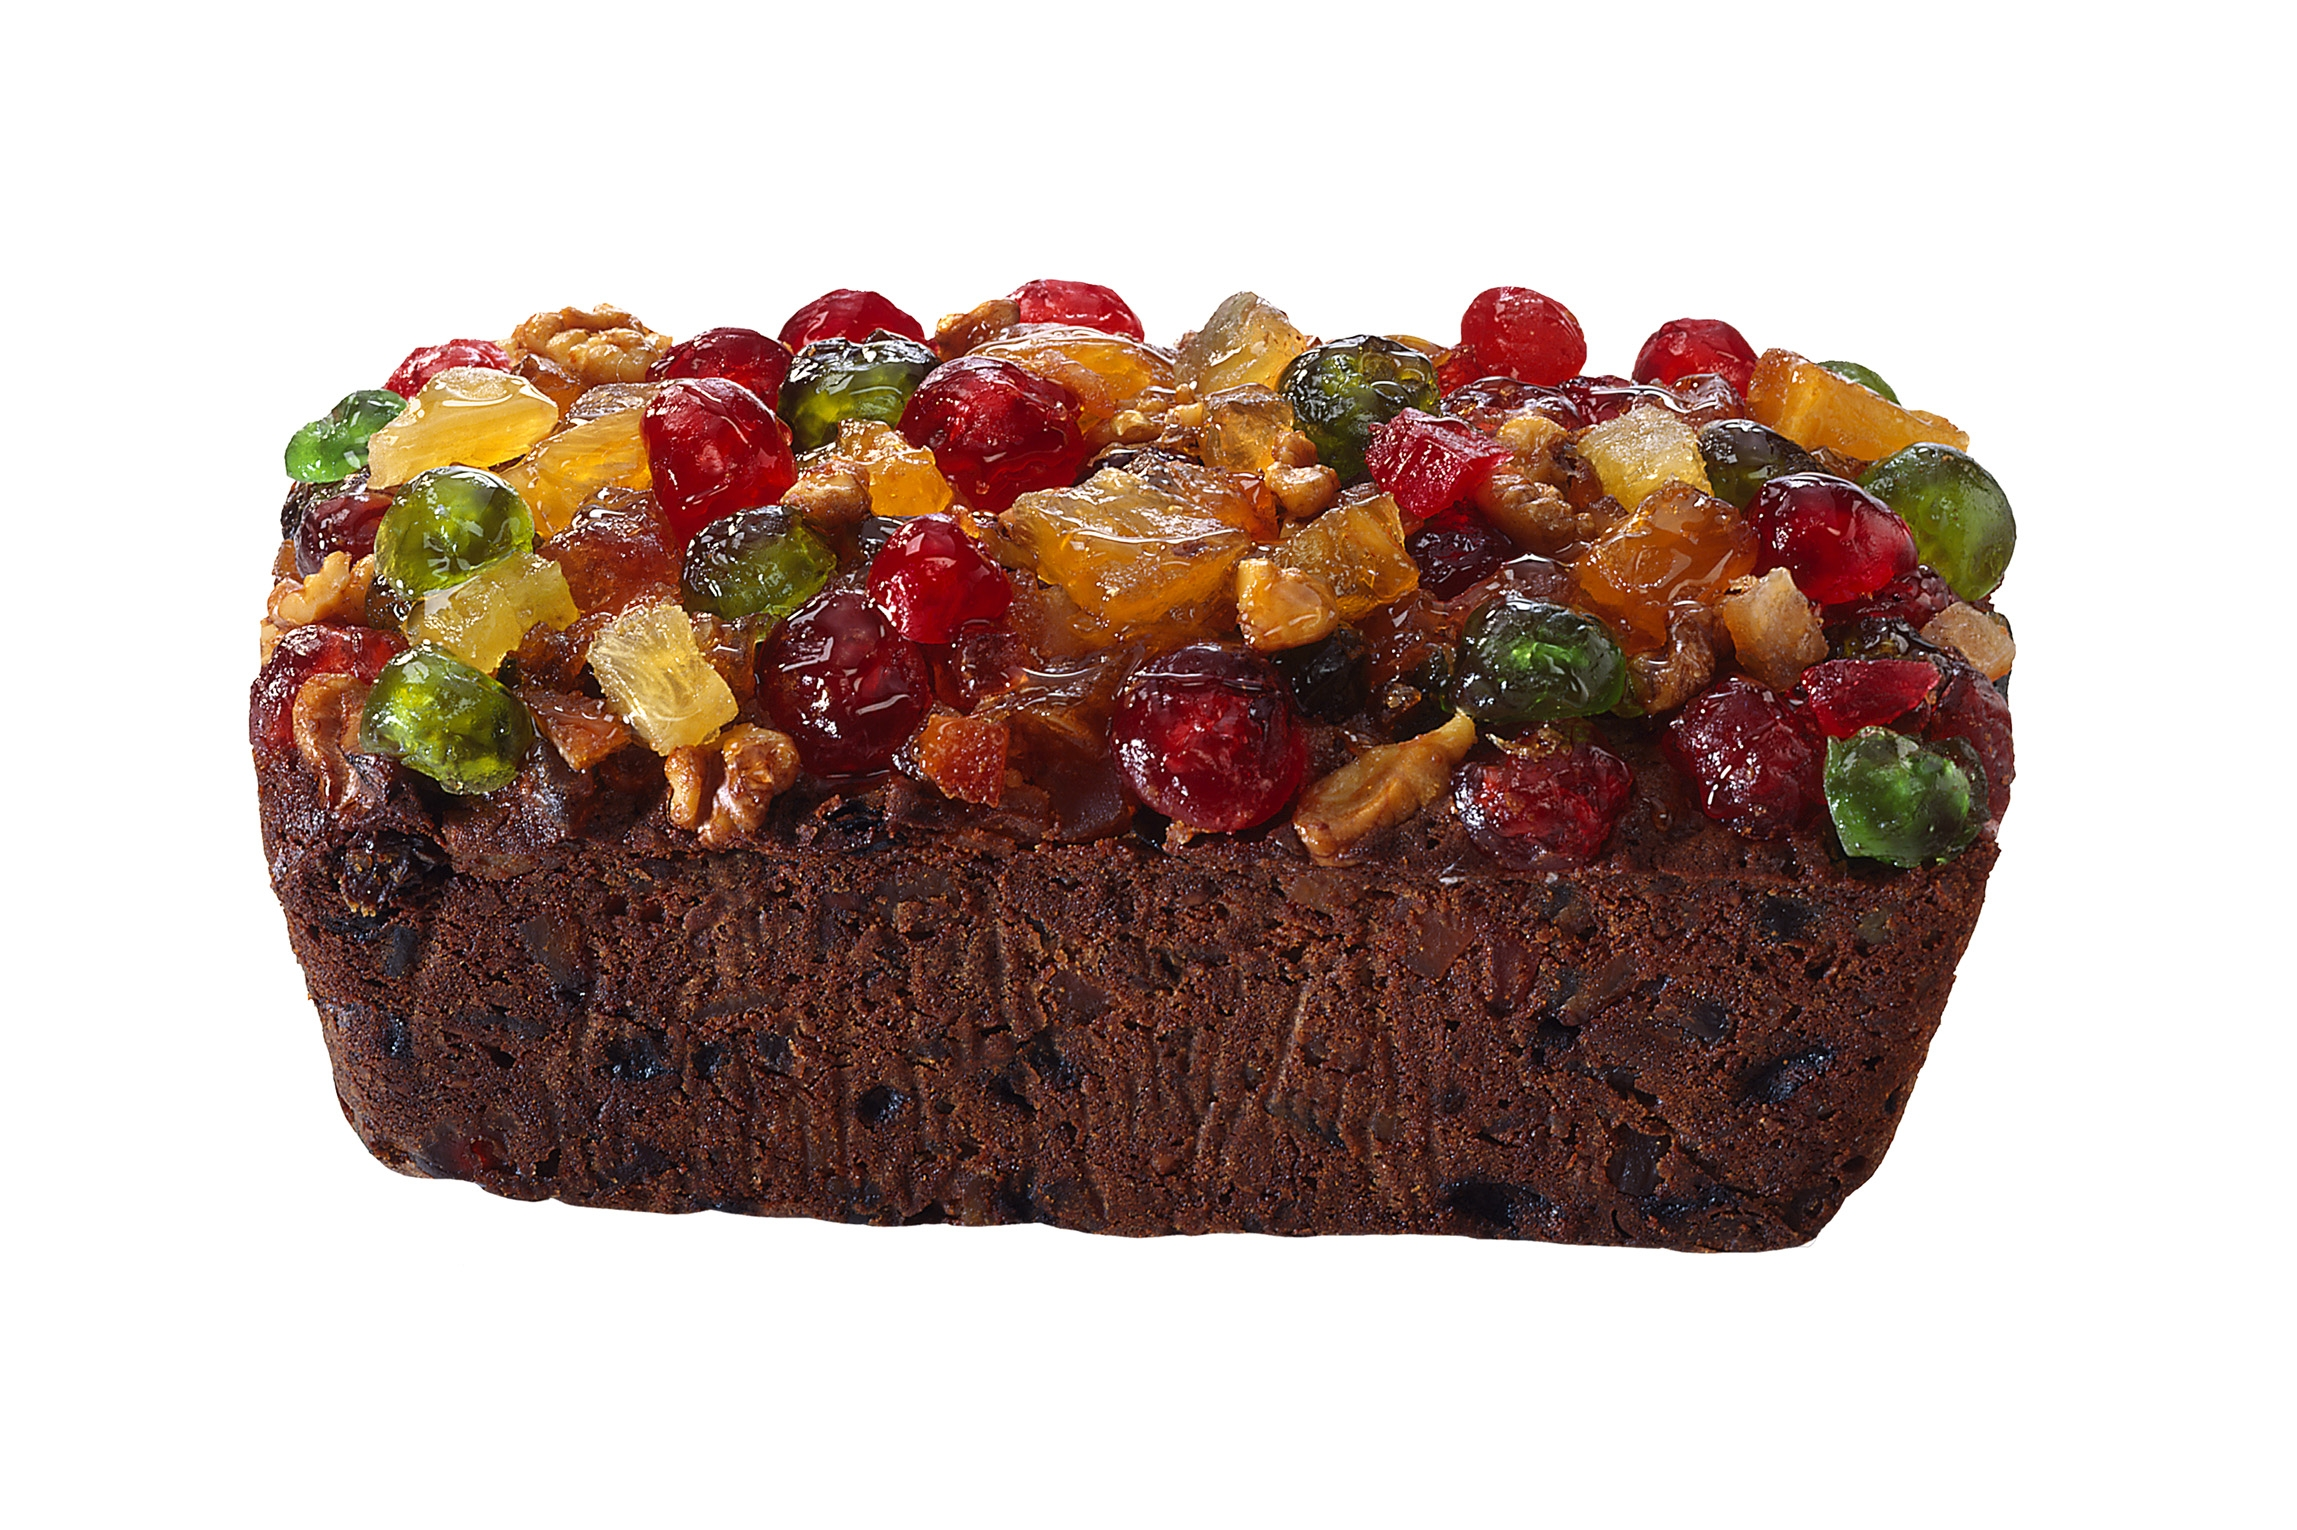 Fruit Cakes Meaning